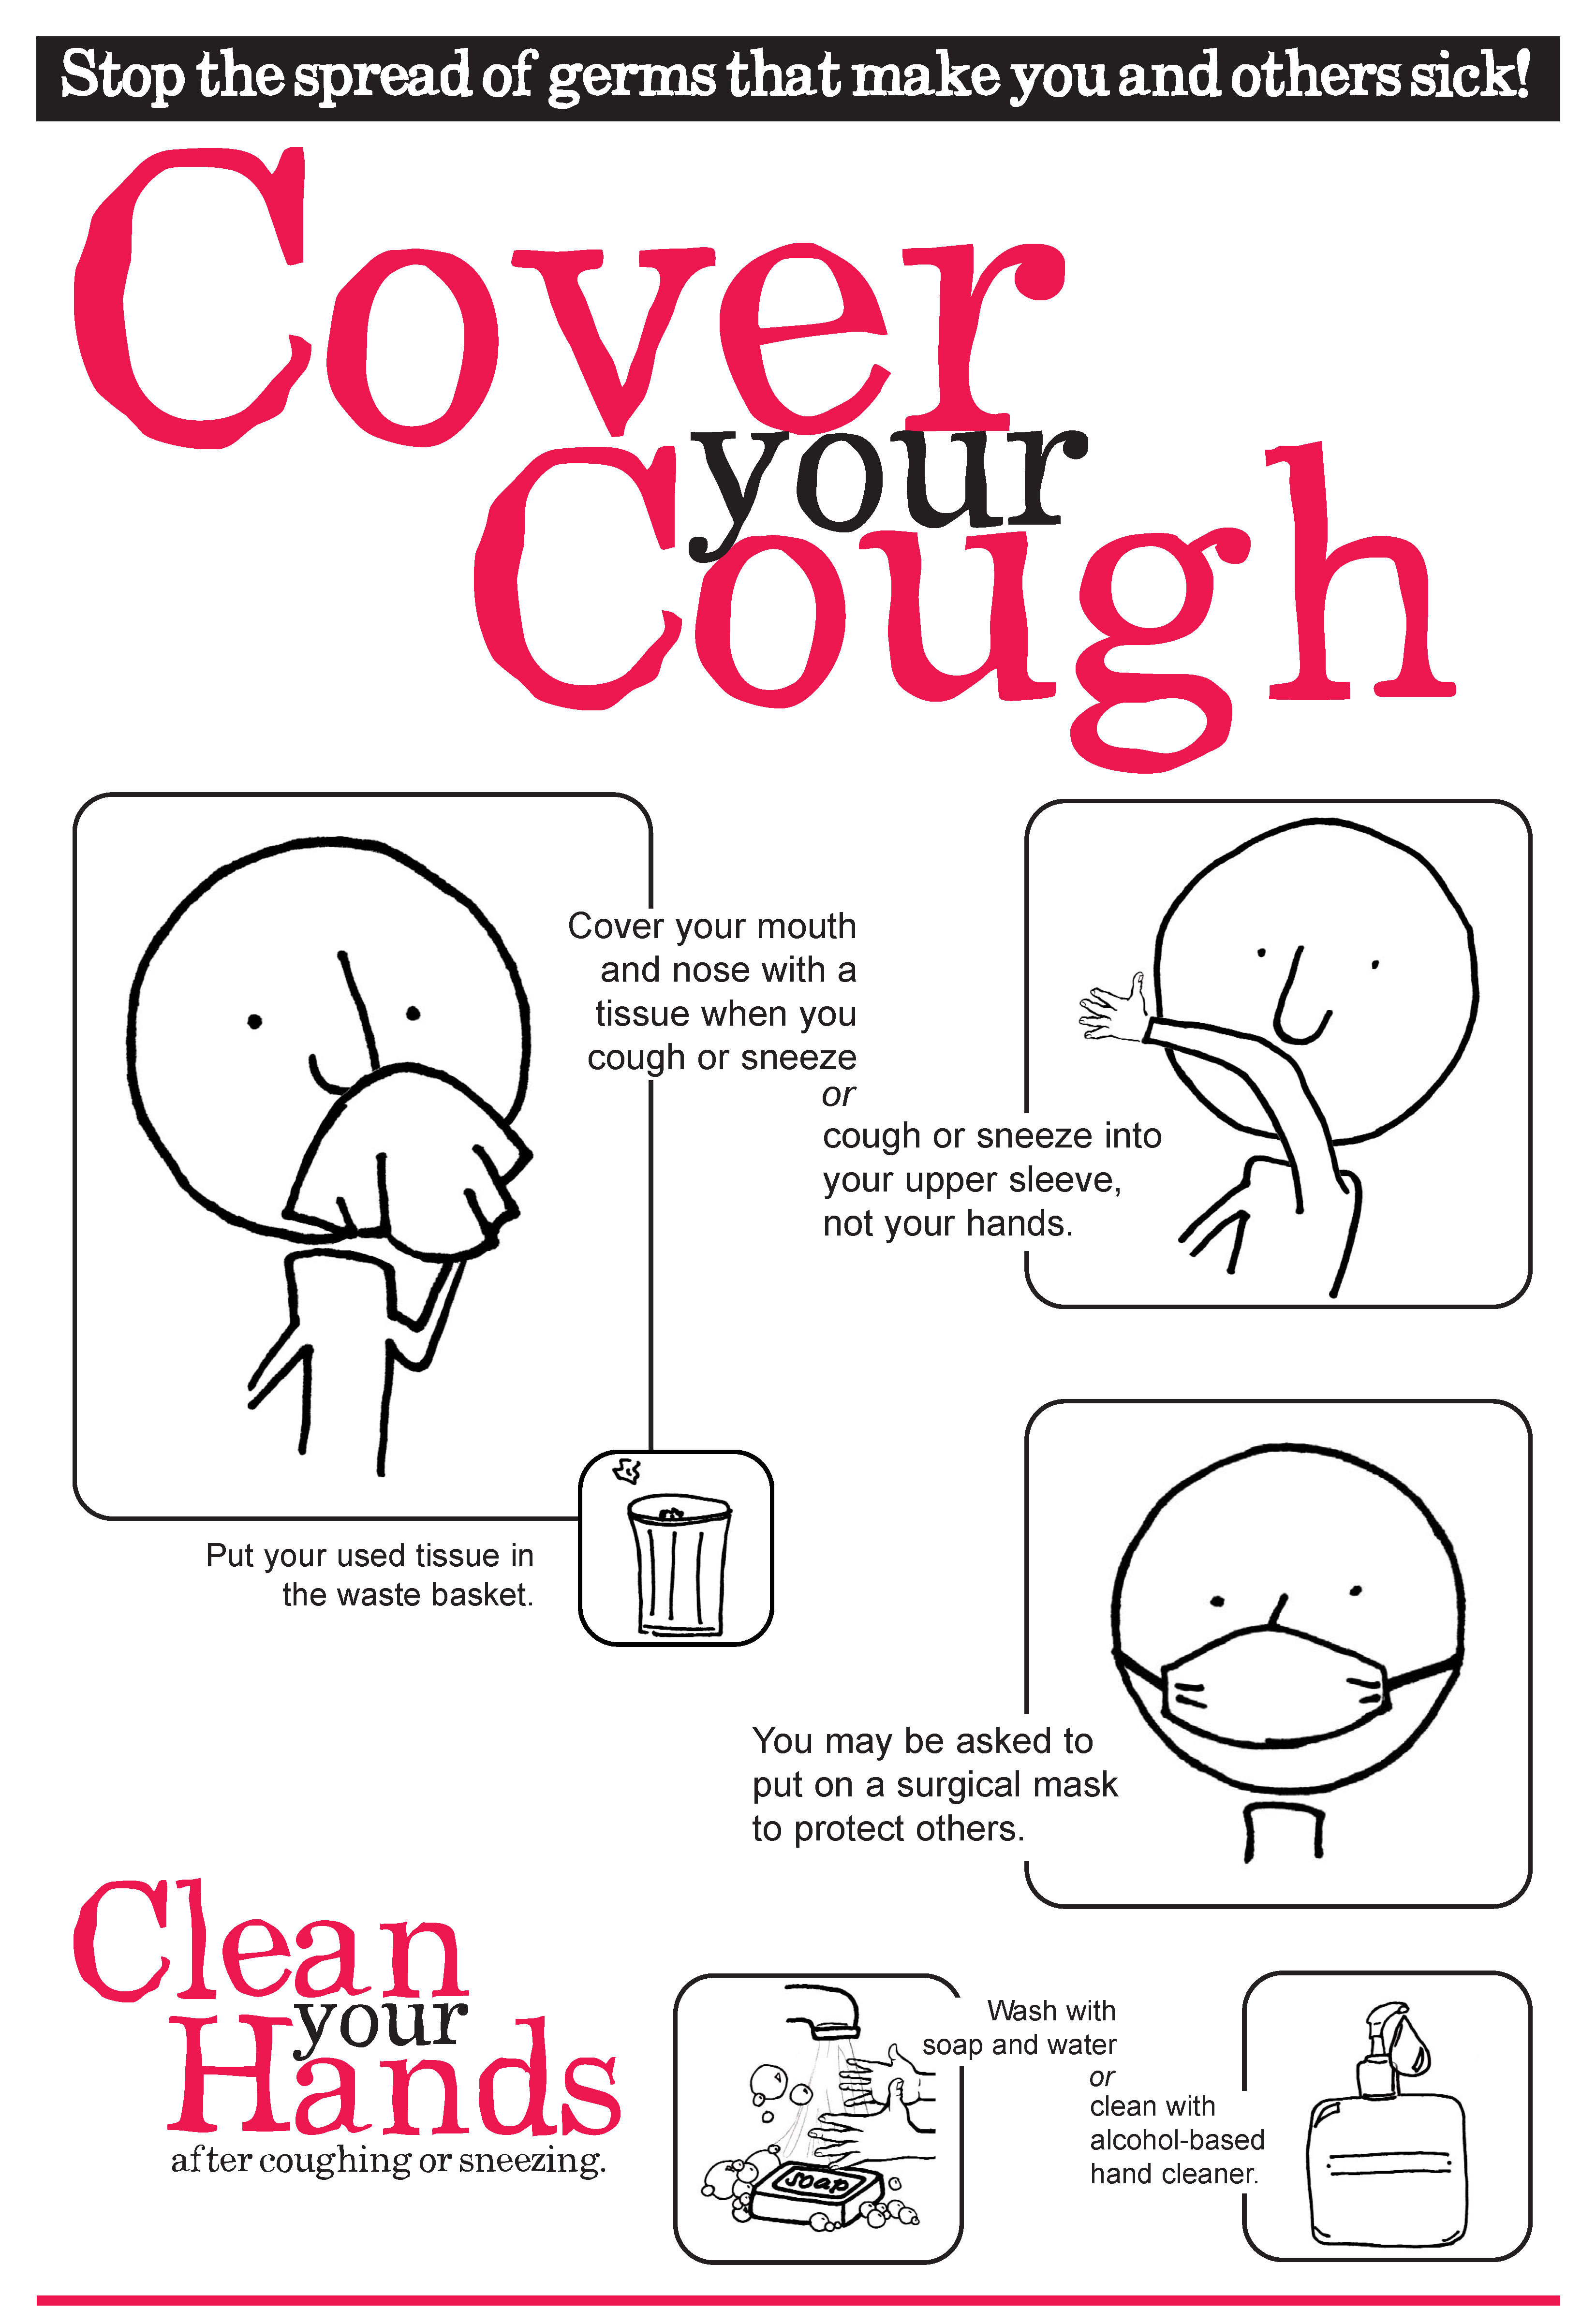 Cover Your Cough_h-o.jpg